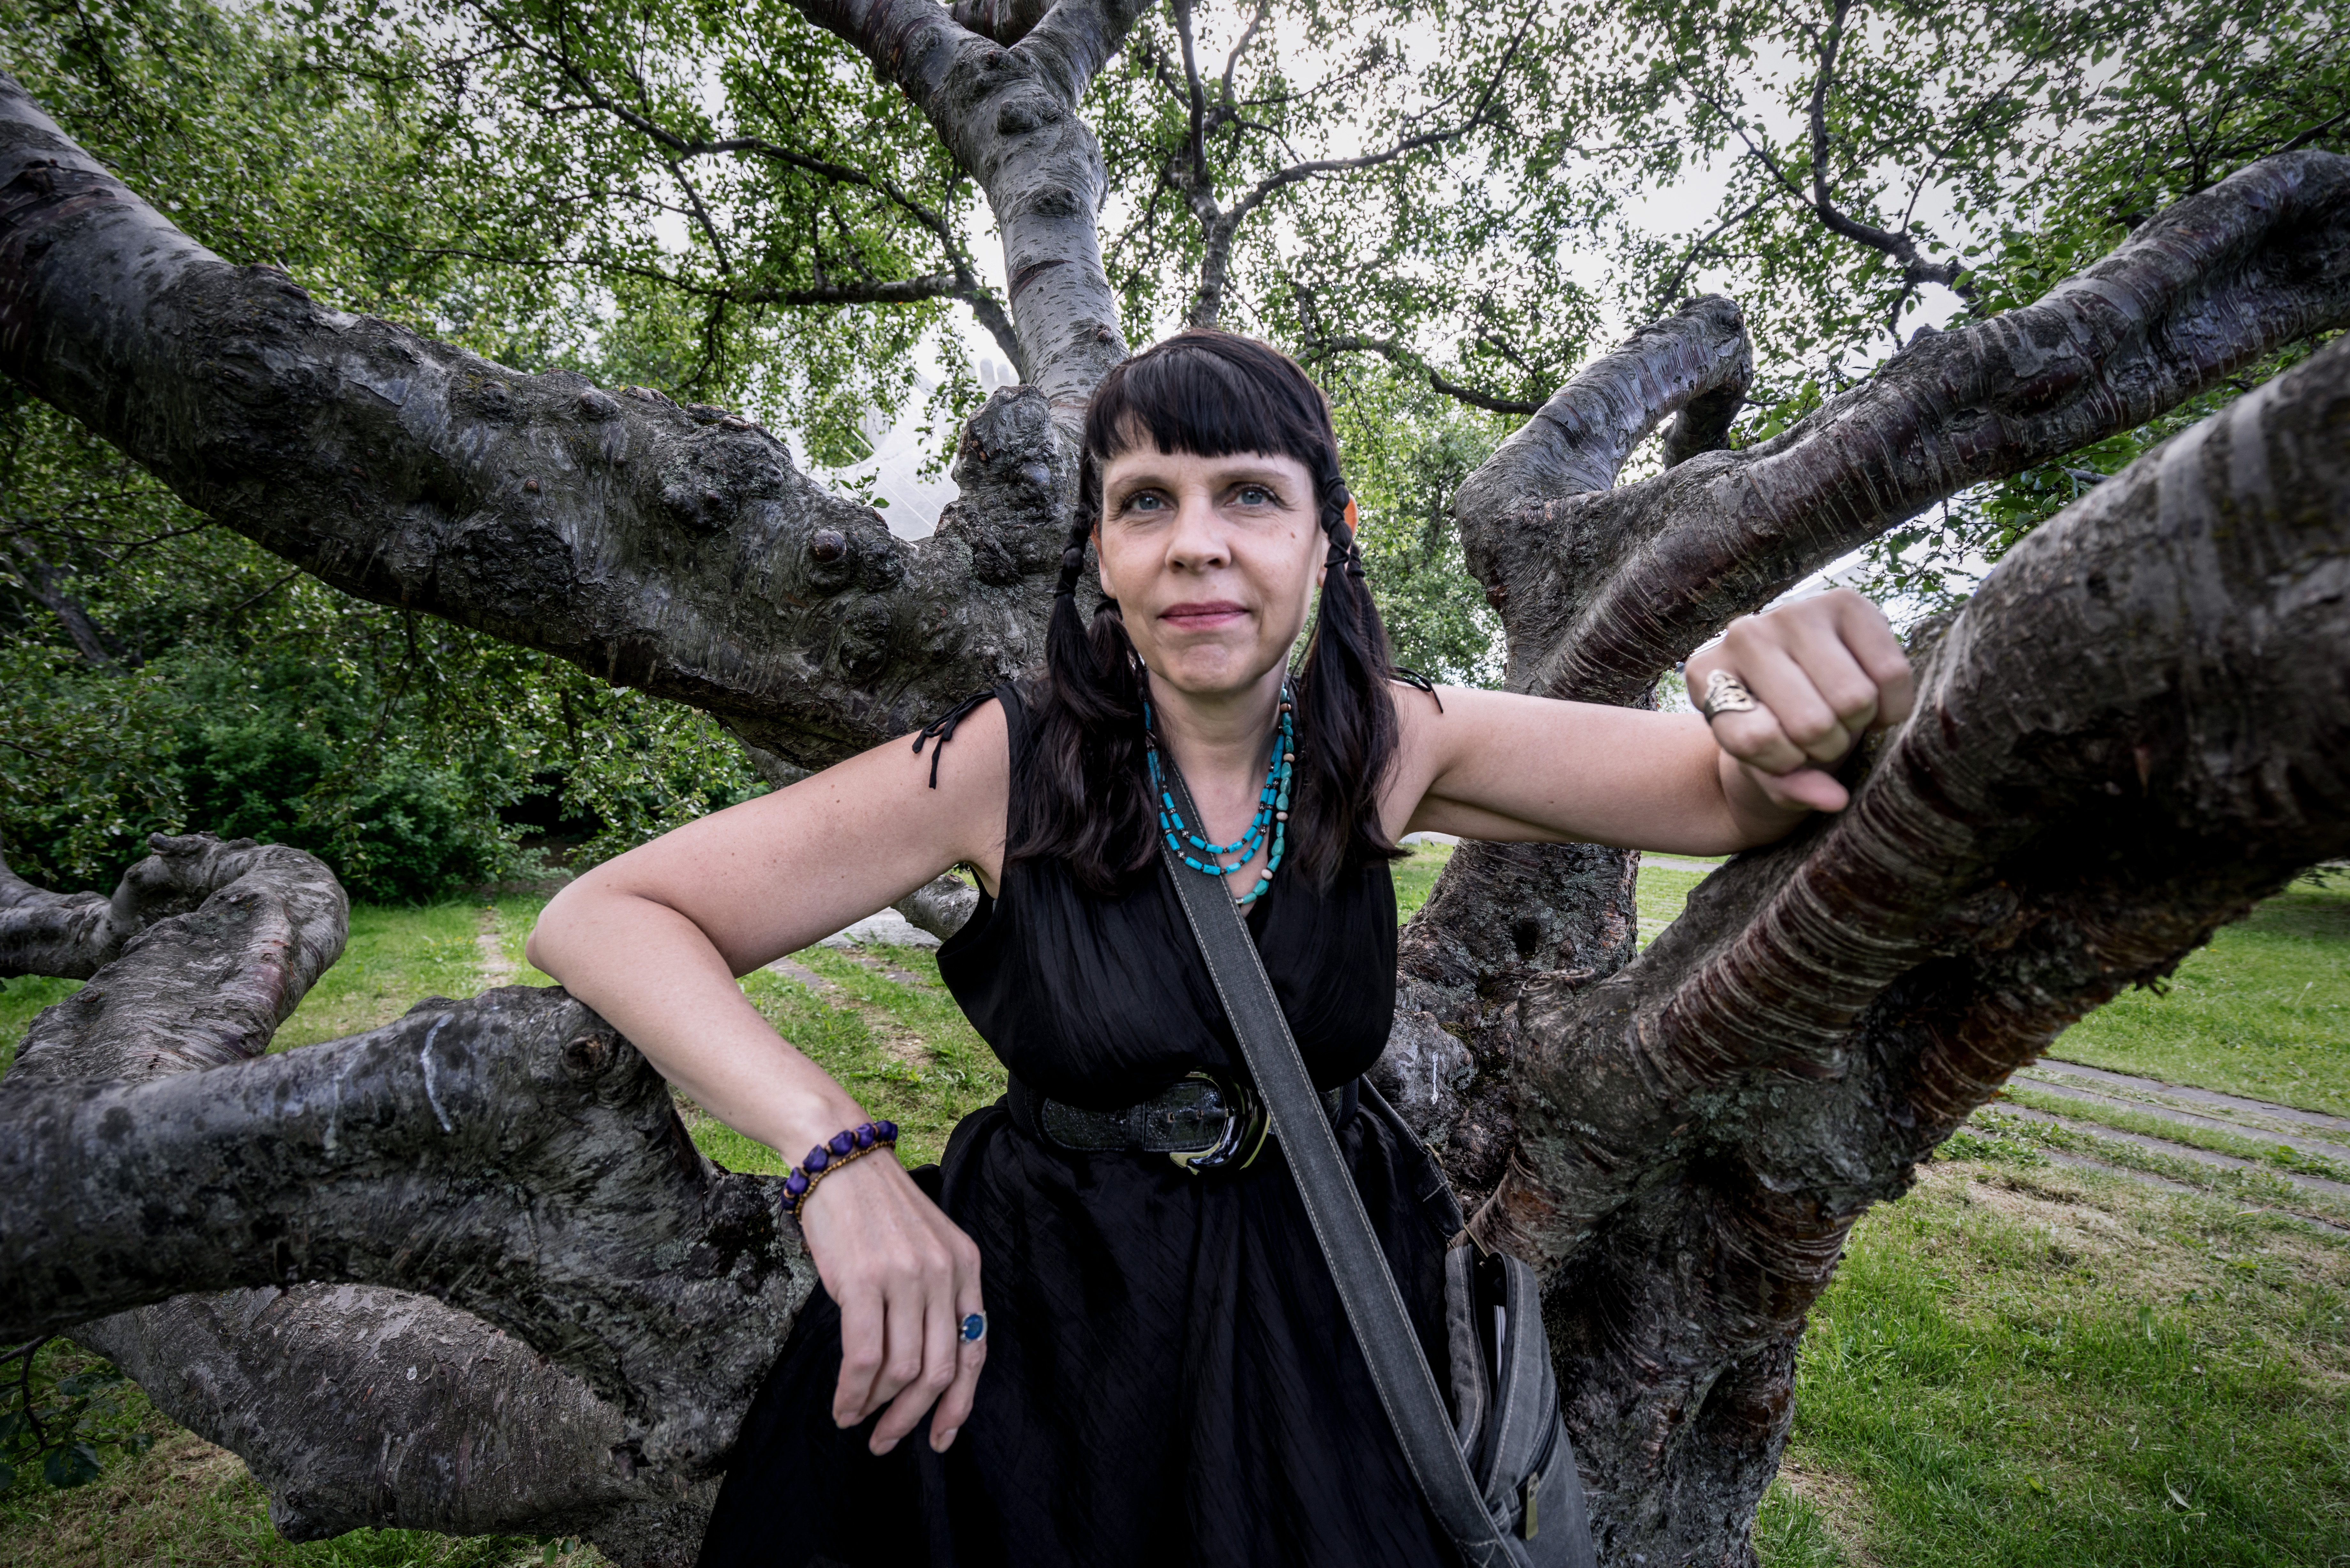 Birgitta Jonsdottir, activist member of the Icelandic parliament representing the Pirate Party, stands in front of a sculpture at an Icelandic sculpture park on July 9, 2015